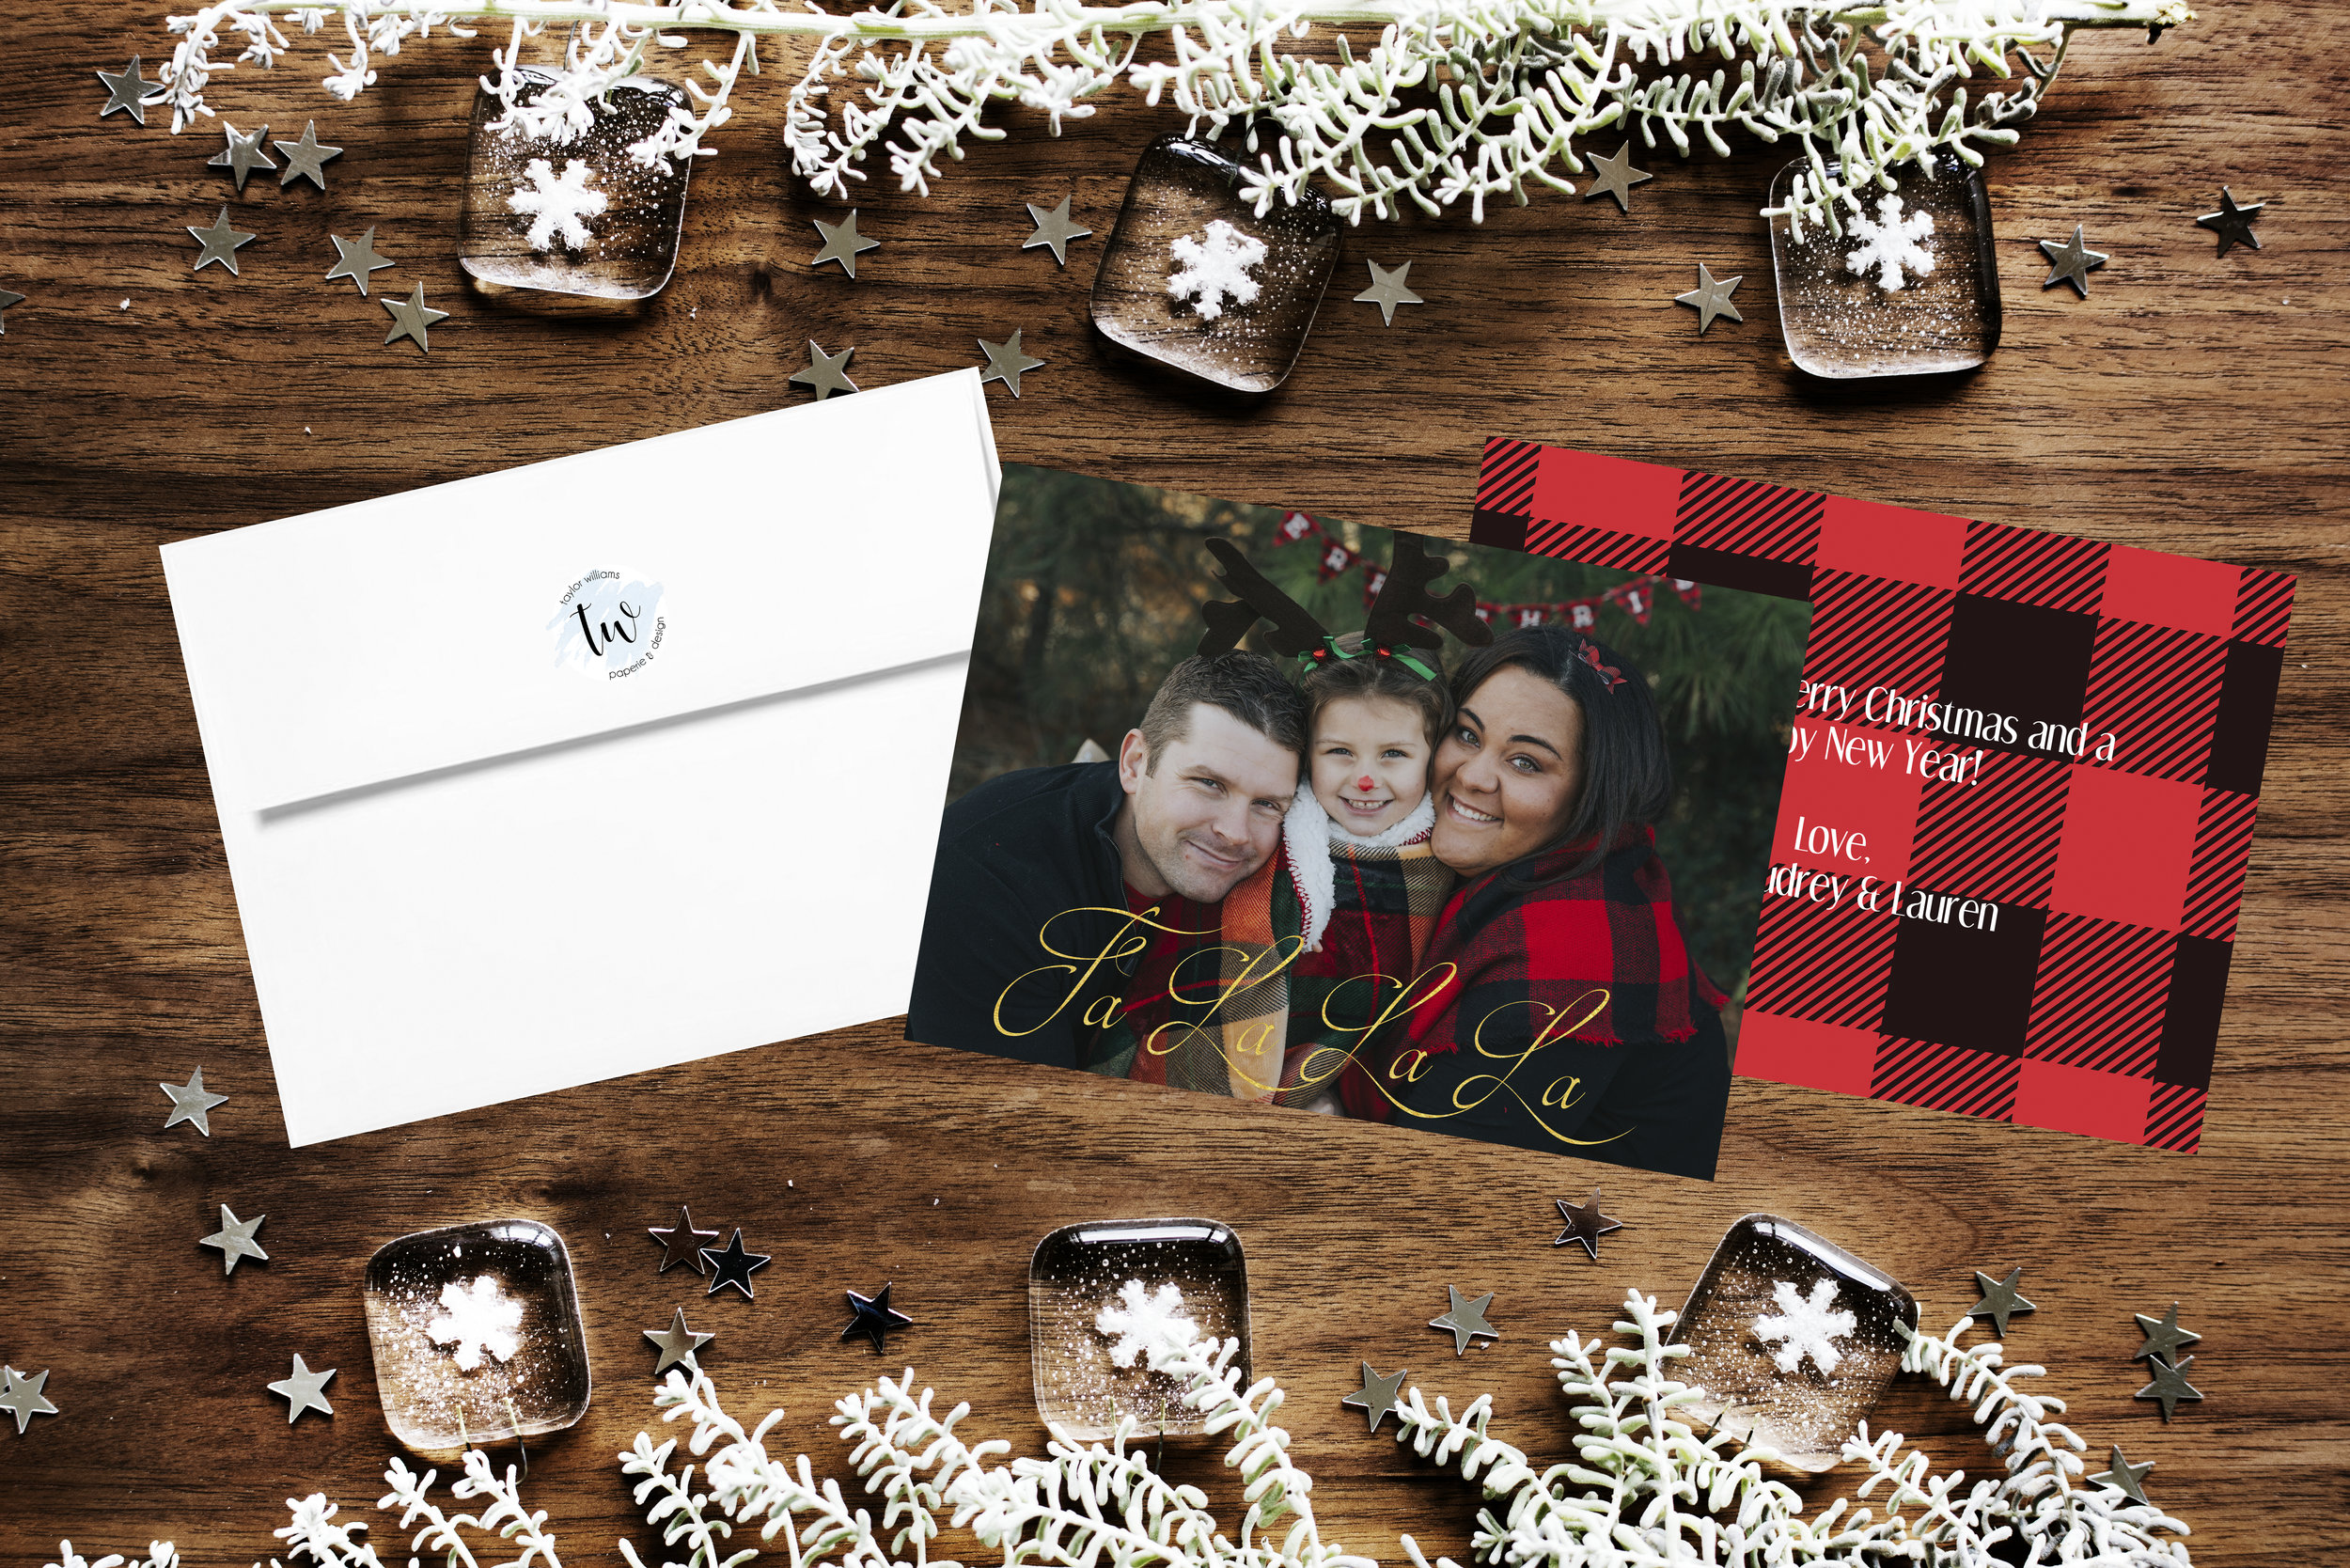 Double Sided Photo Card; Photo Credit: Shelby Renee Photography